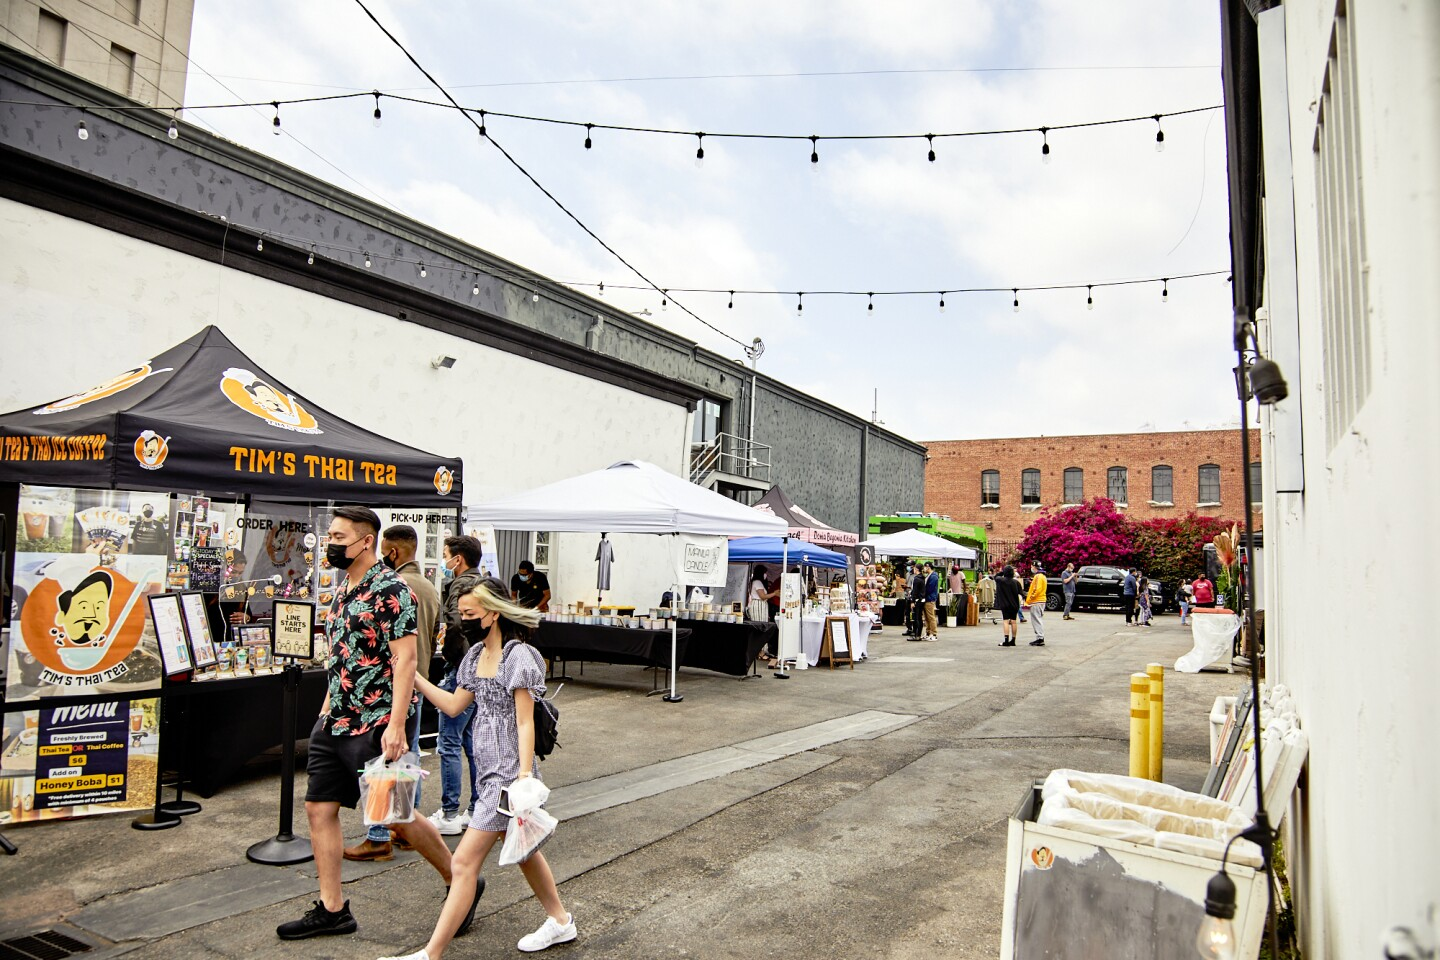 """Masked and arm in arm, two attendees walk through the booths and tents at the FilLed Market in Downtown L.A. A nearby tent reads, """"Tim's Thai Tea."""" The attendees are holding miscellaneous plastic bags and a bag with drinks."""